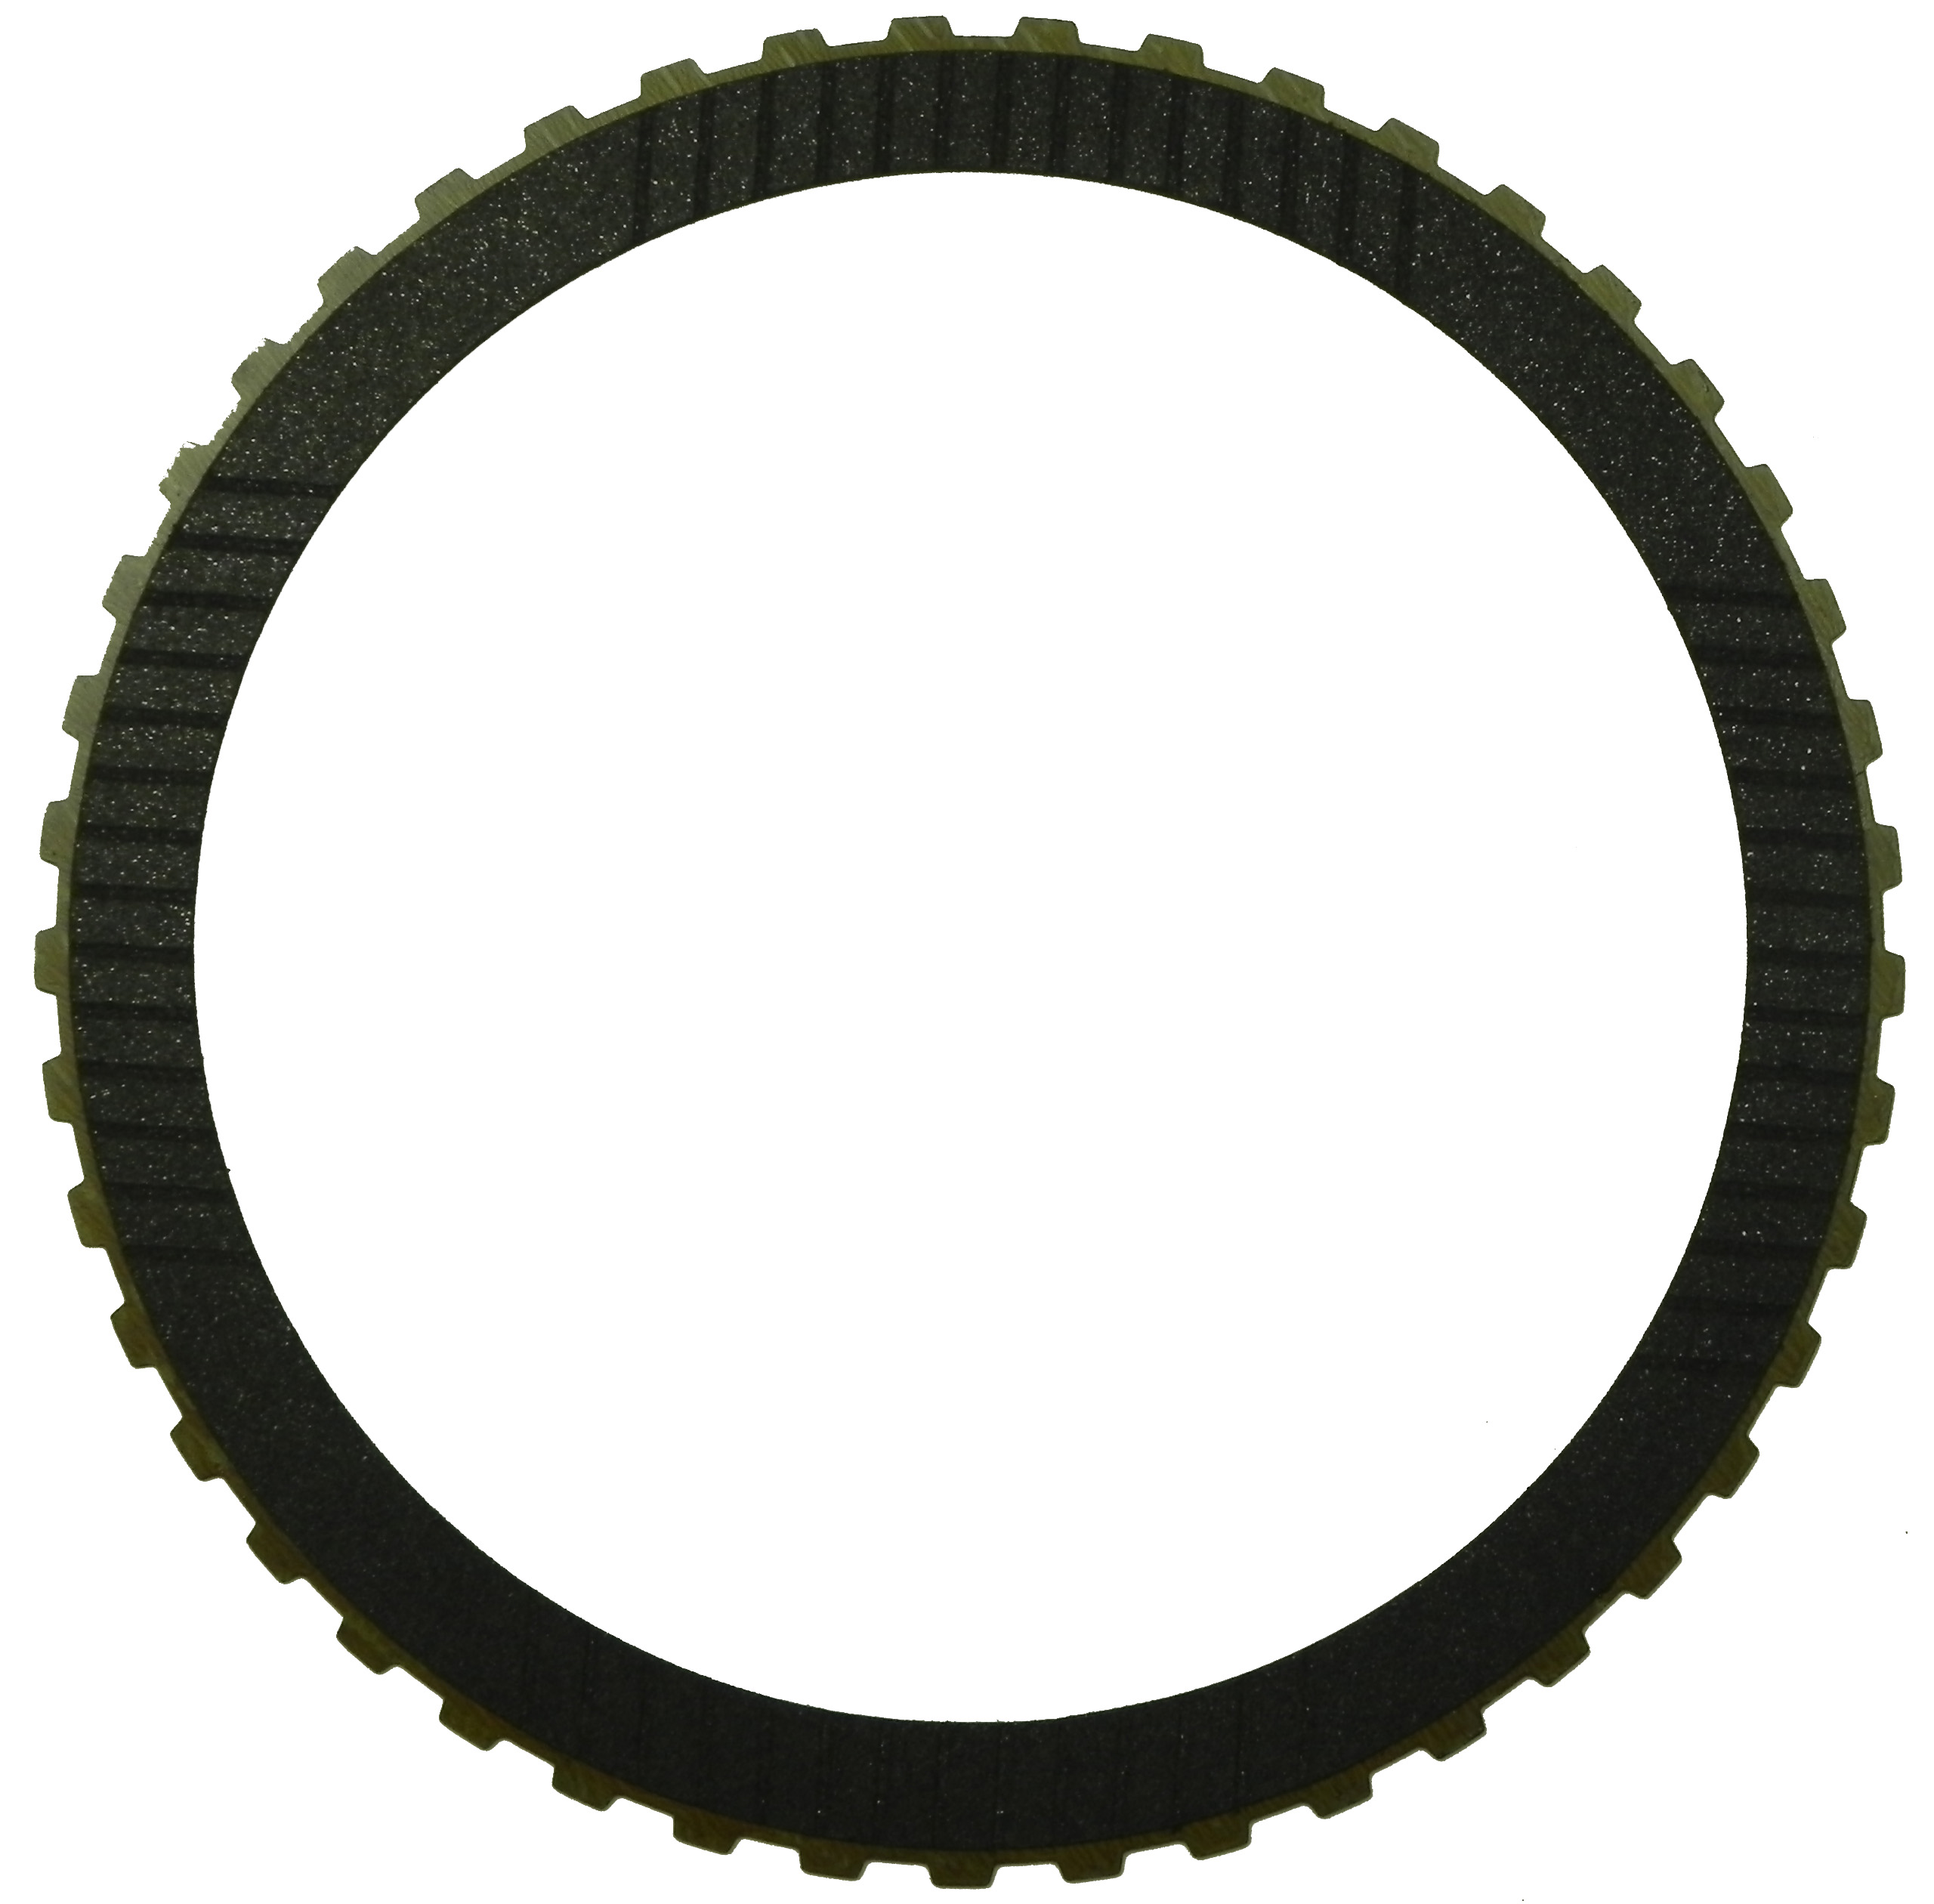 65RFE, 66RFE, 68RFE High Energy Friction Clutch Plate